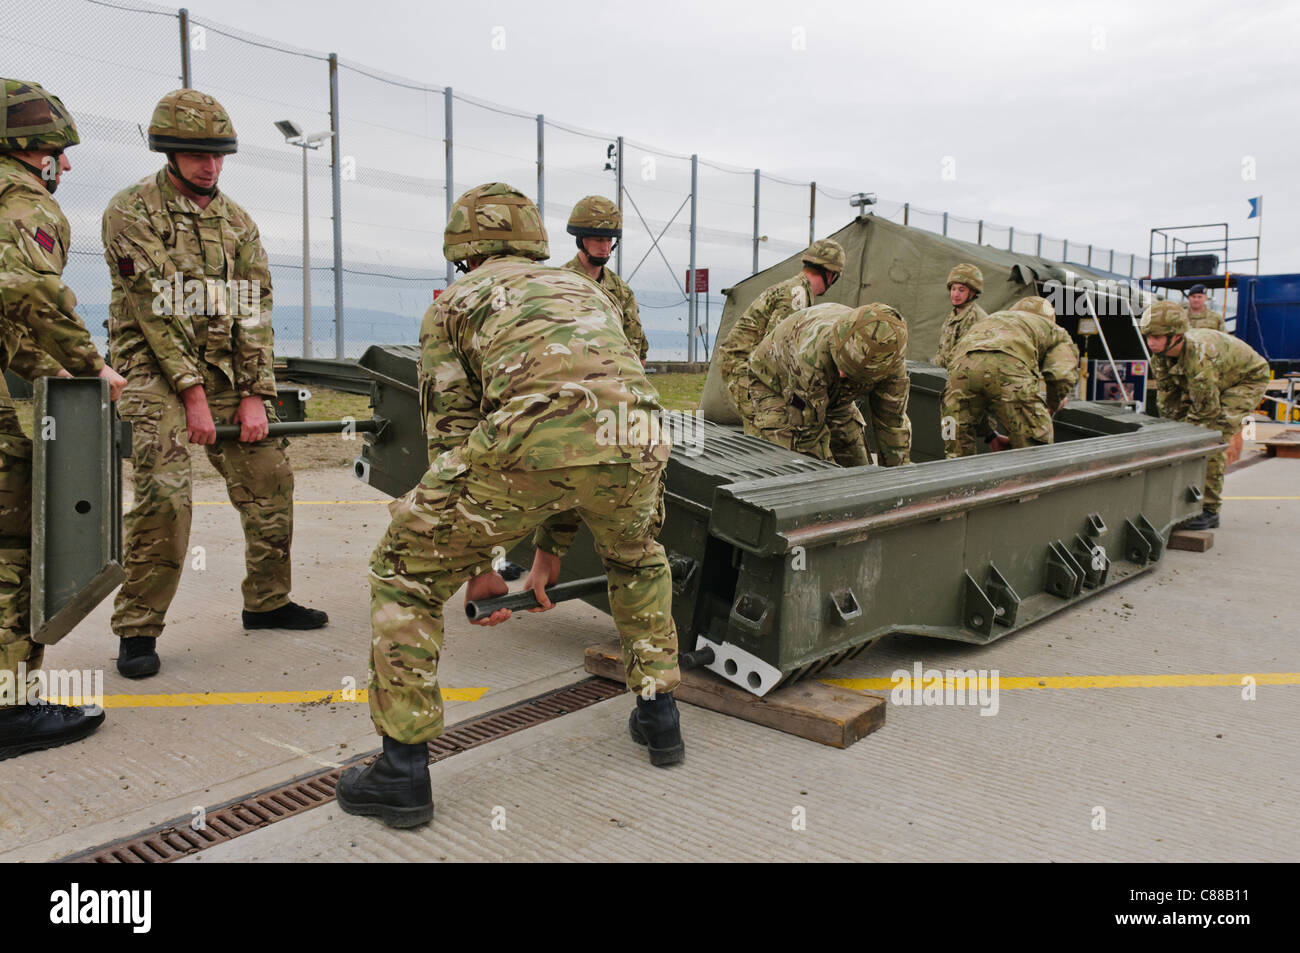 Soldiers assemble a mobile pontoon for crossing gaps - Stock Image